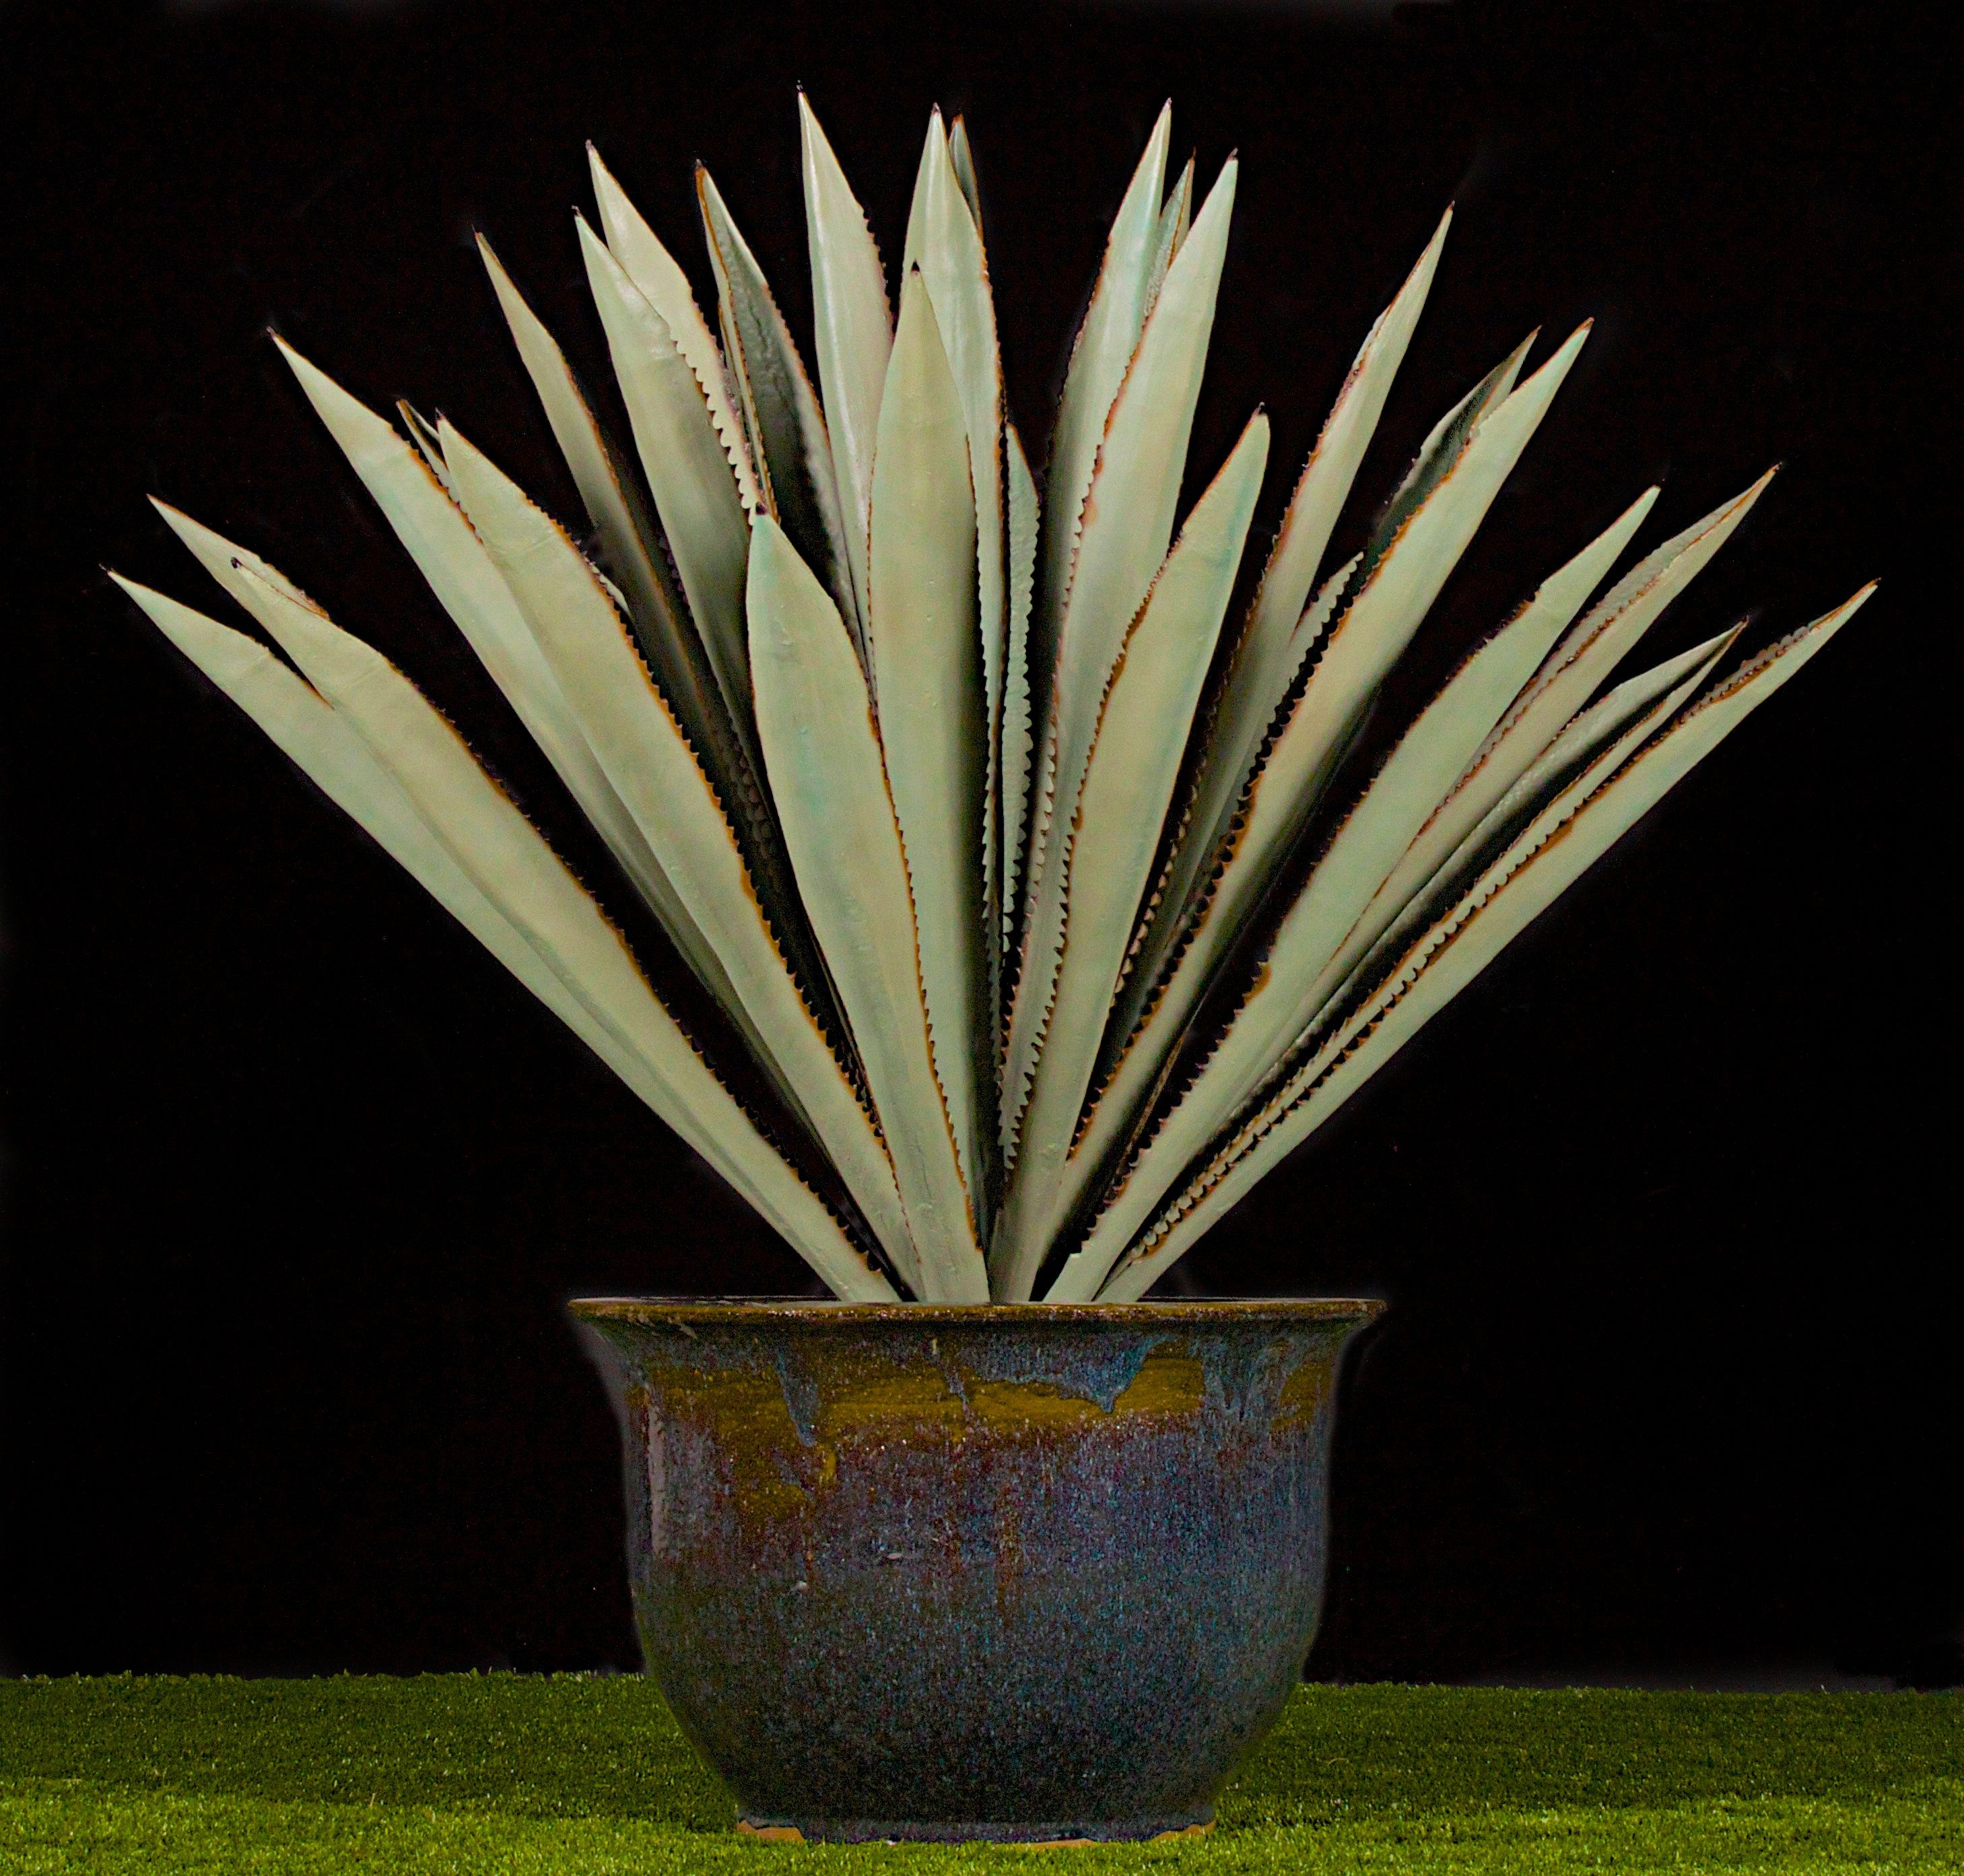 6'x7' fabricated agave plant Agave plant, Plants, Exterior